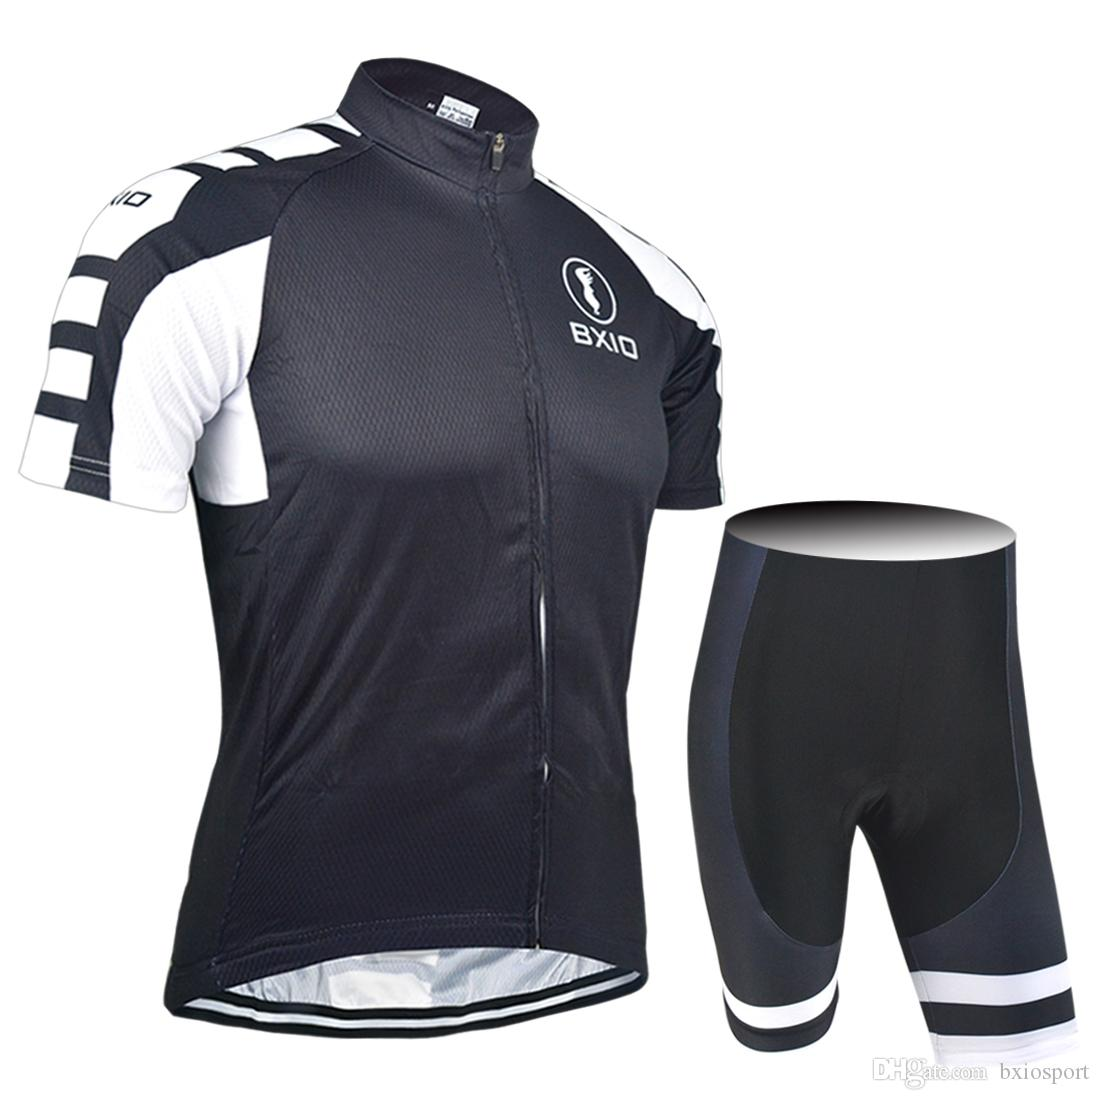 fd04cb51e BXIO Brand Cycling Jerseys Sublimation Printing Cycle Clothes MTB Cycle  Bikers Cycling Jackets Sets Fashion Short Sleeve Cycle Wear BX 015 Best  Cycling ...